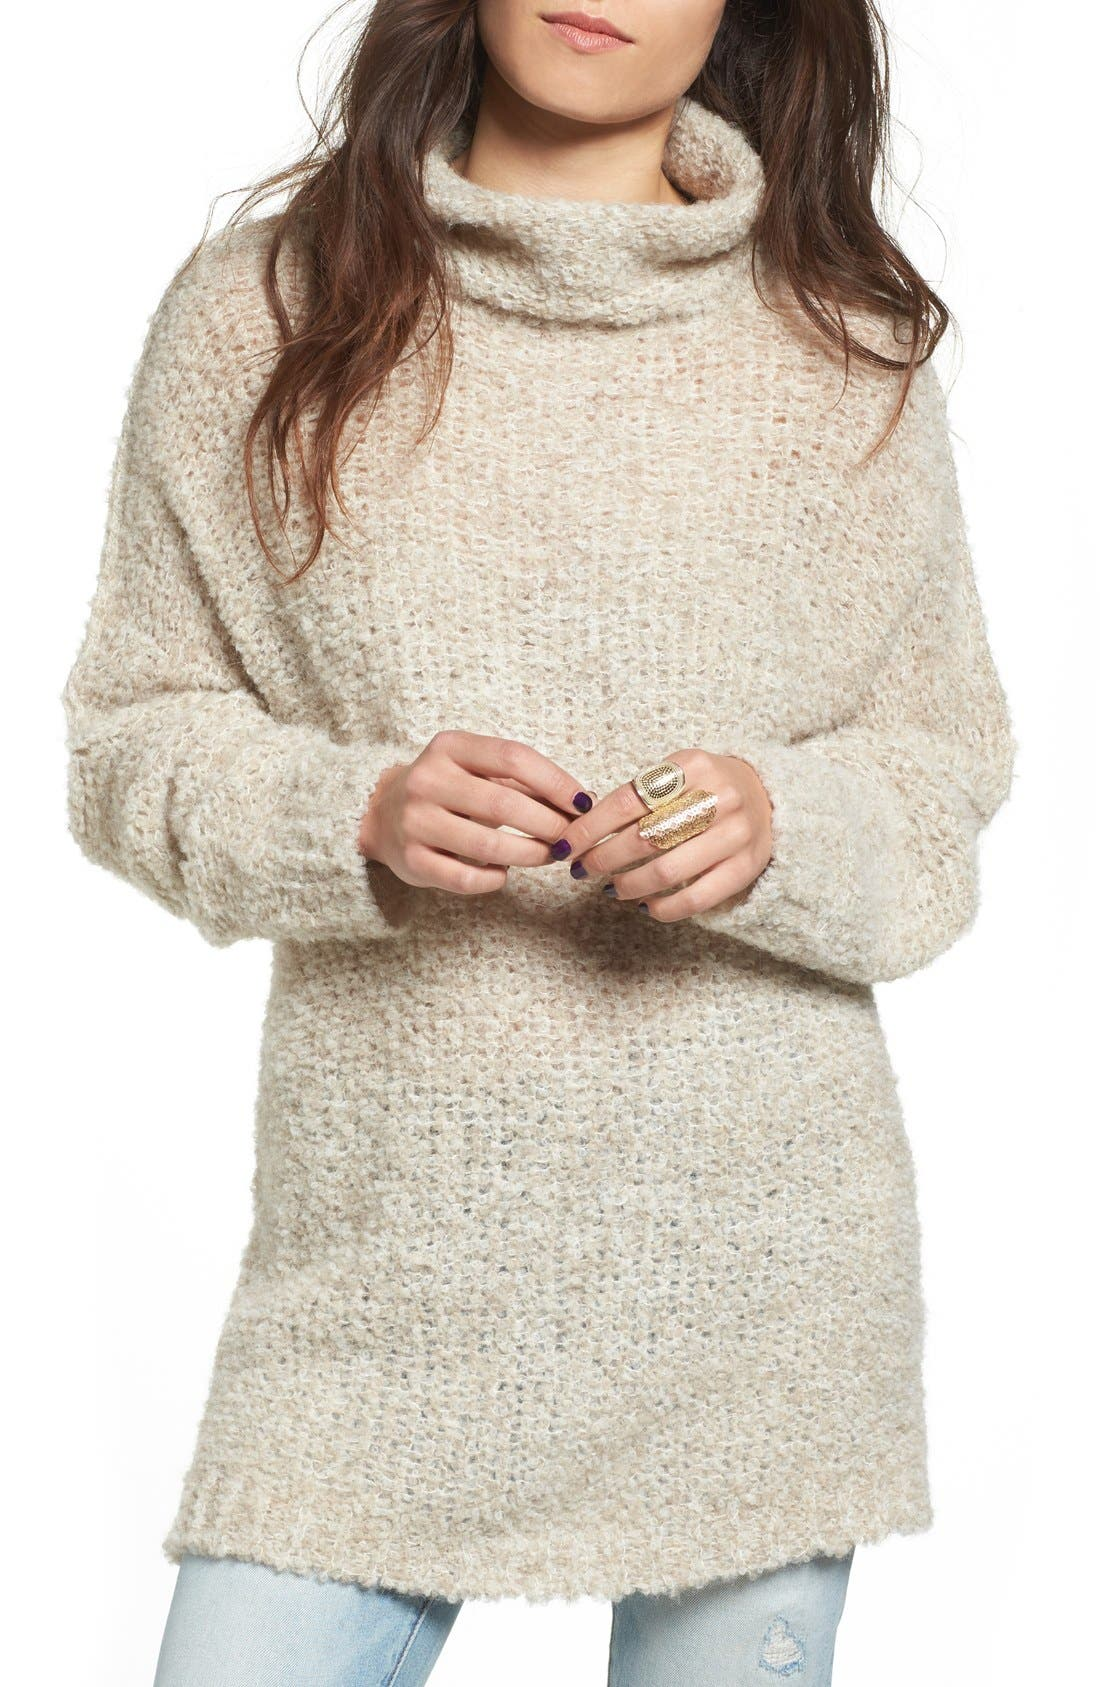 'She's All That' Knit Turtleneck Sweater,                             Main thumbnail 5, color,